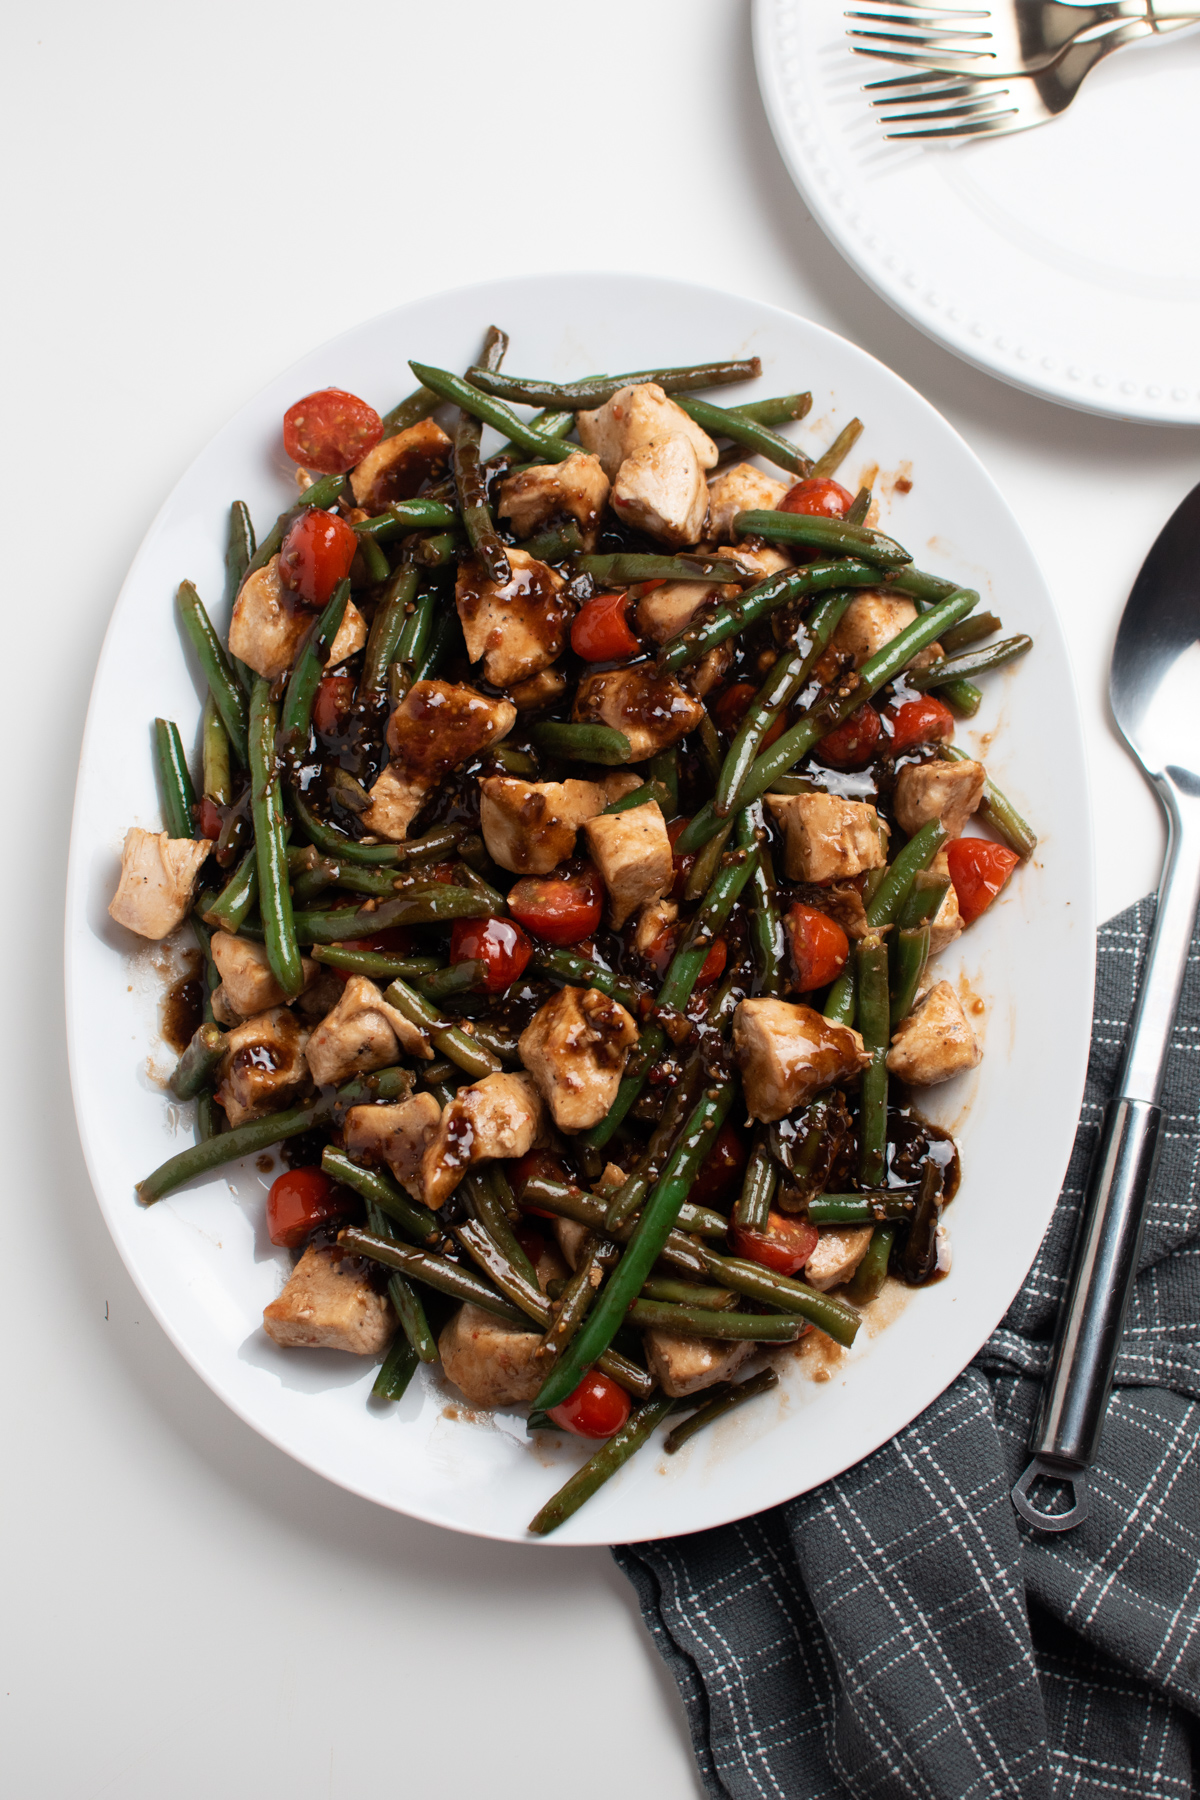 White platter of balsamic chicken, green beans, and cherry tomatoes next to gray towel.